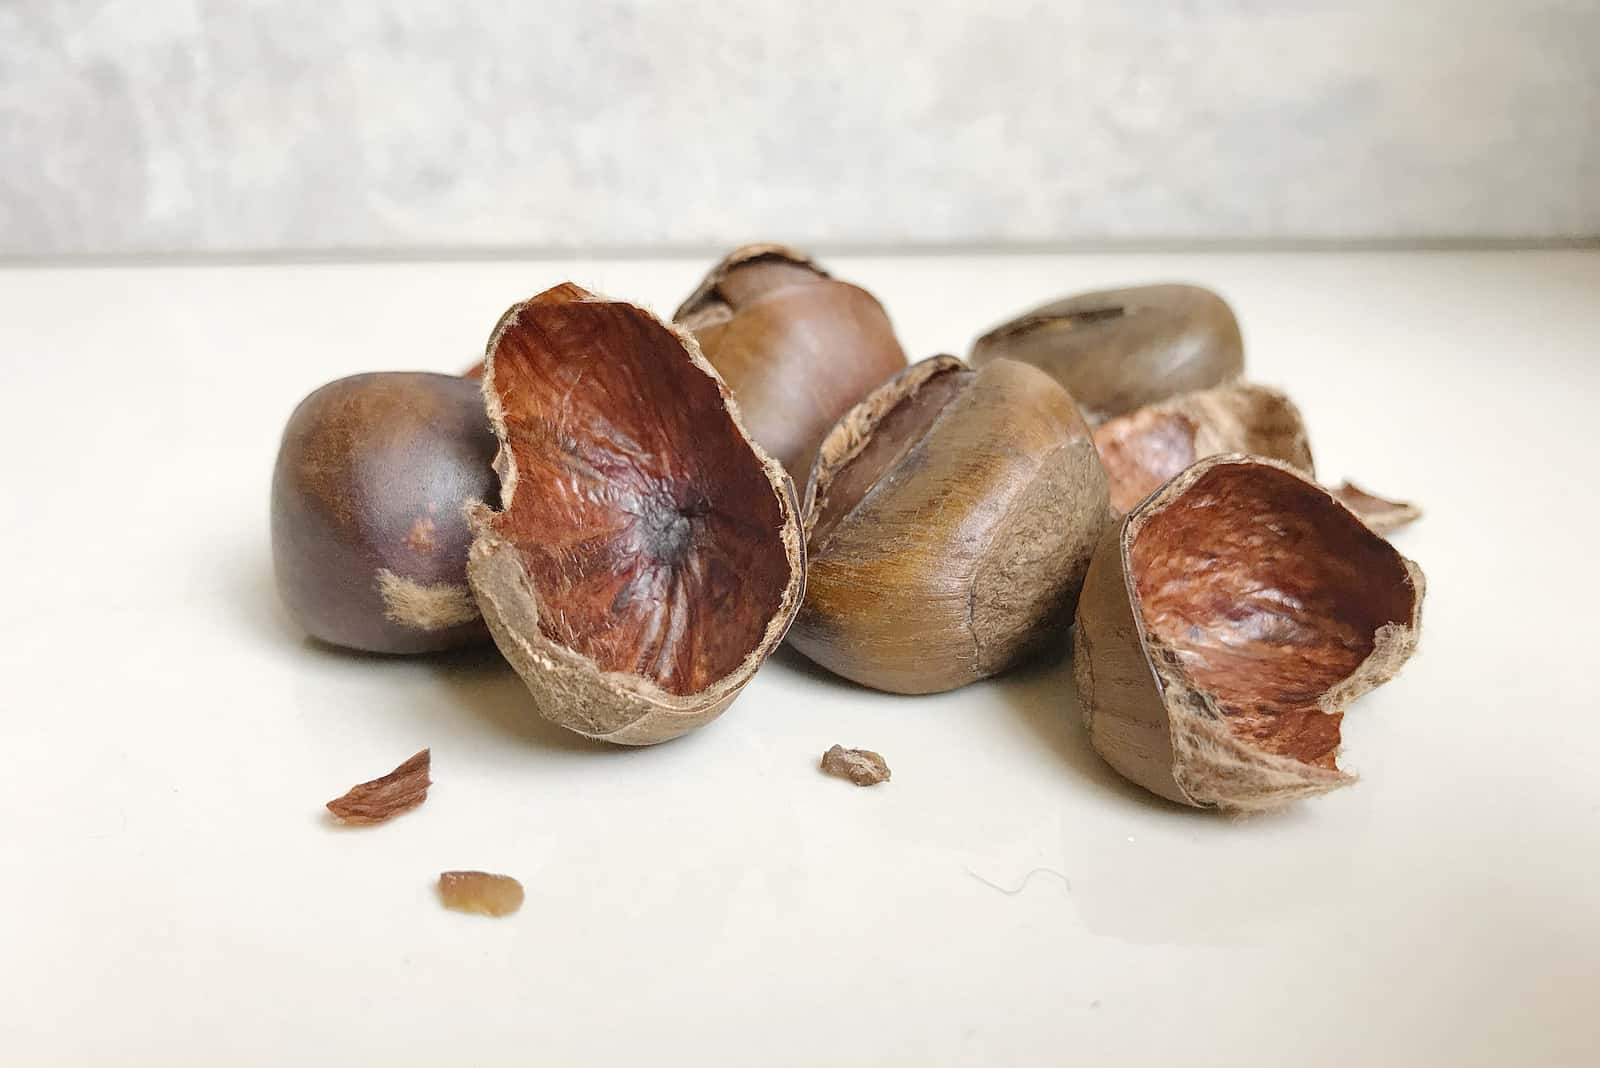 chestnut shells on the table